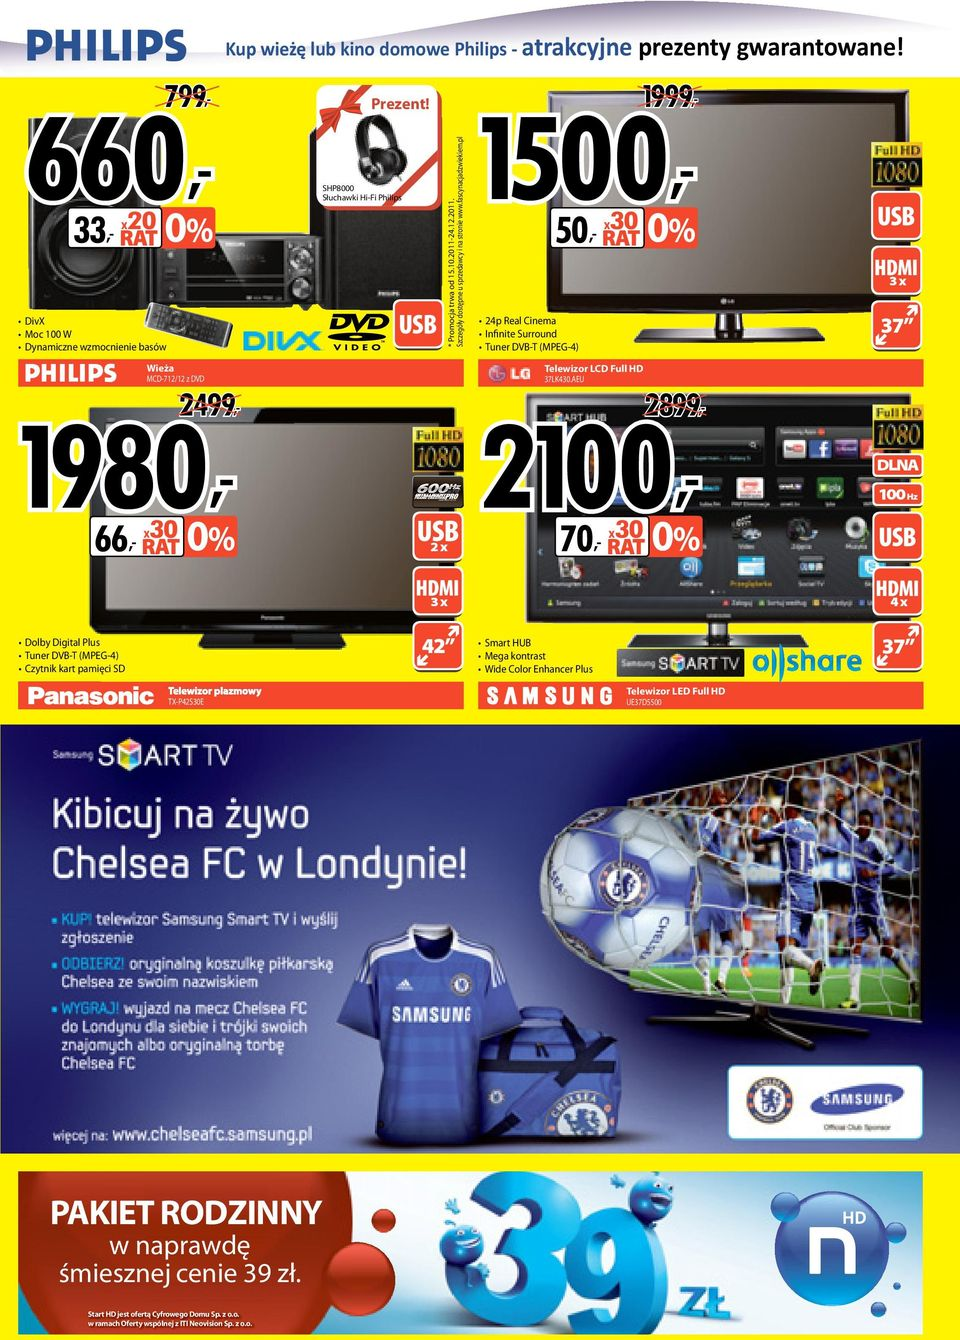 pl 2 x 3 x 1500, 24p Real Cinema Infinite Surround Tuner DVB-T (MPEG-4) 50, x30 Telewizor LCD Full HD 37LK430.